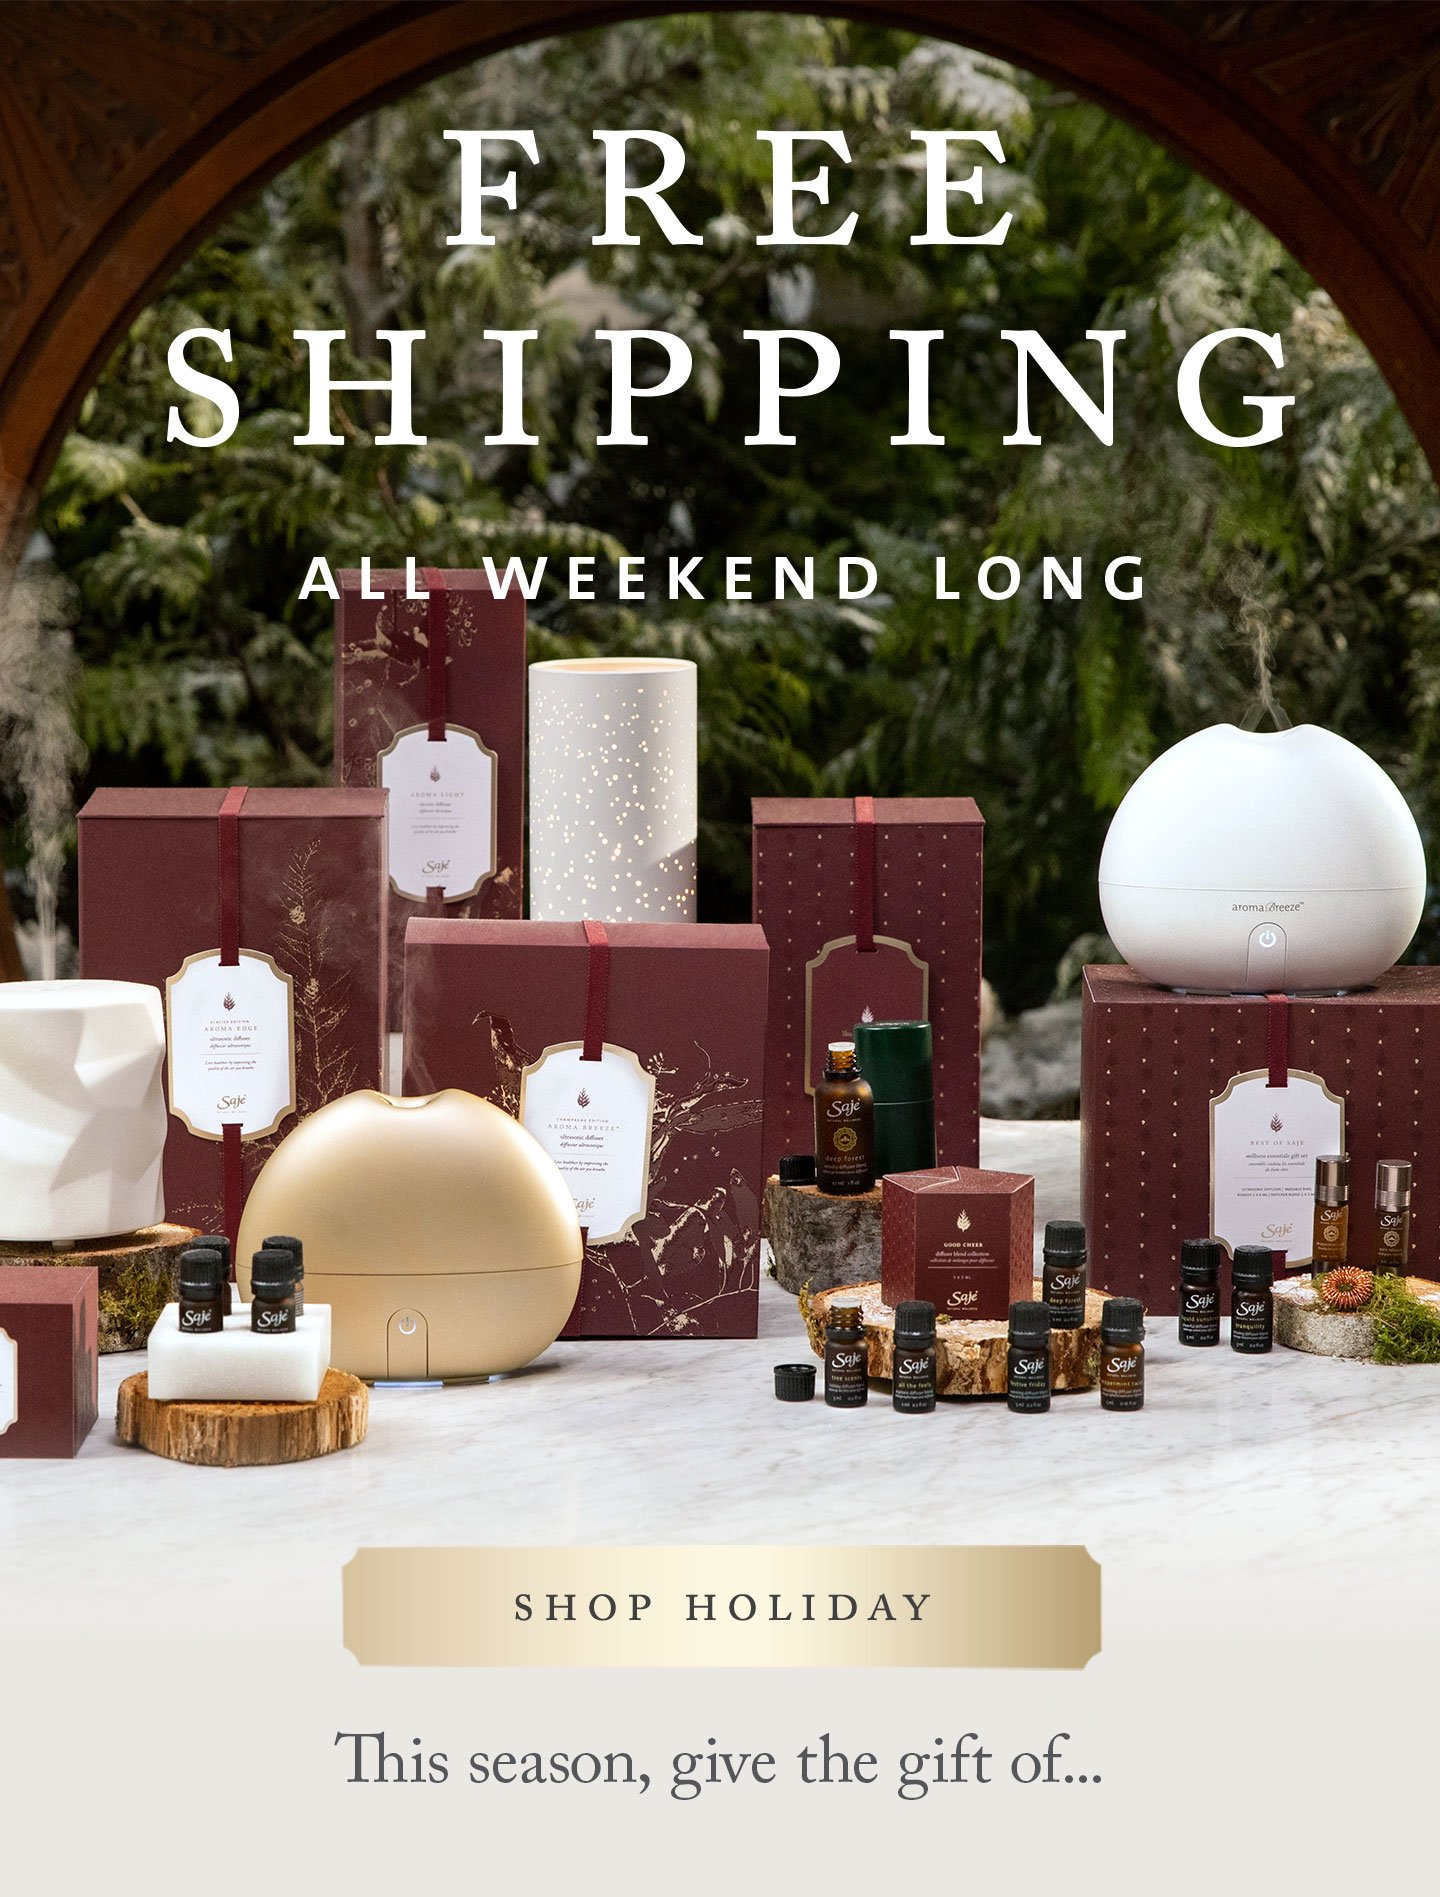 Free shipping all weekend long - Shop now